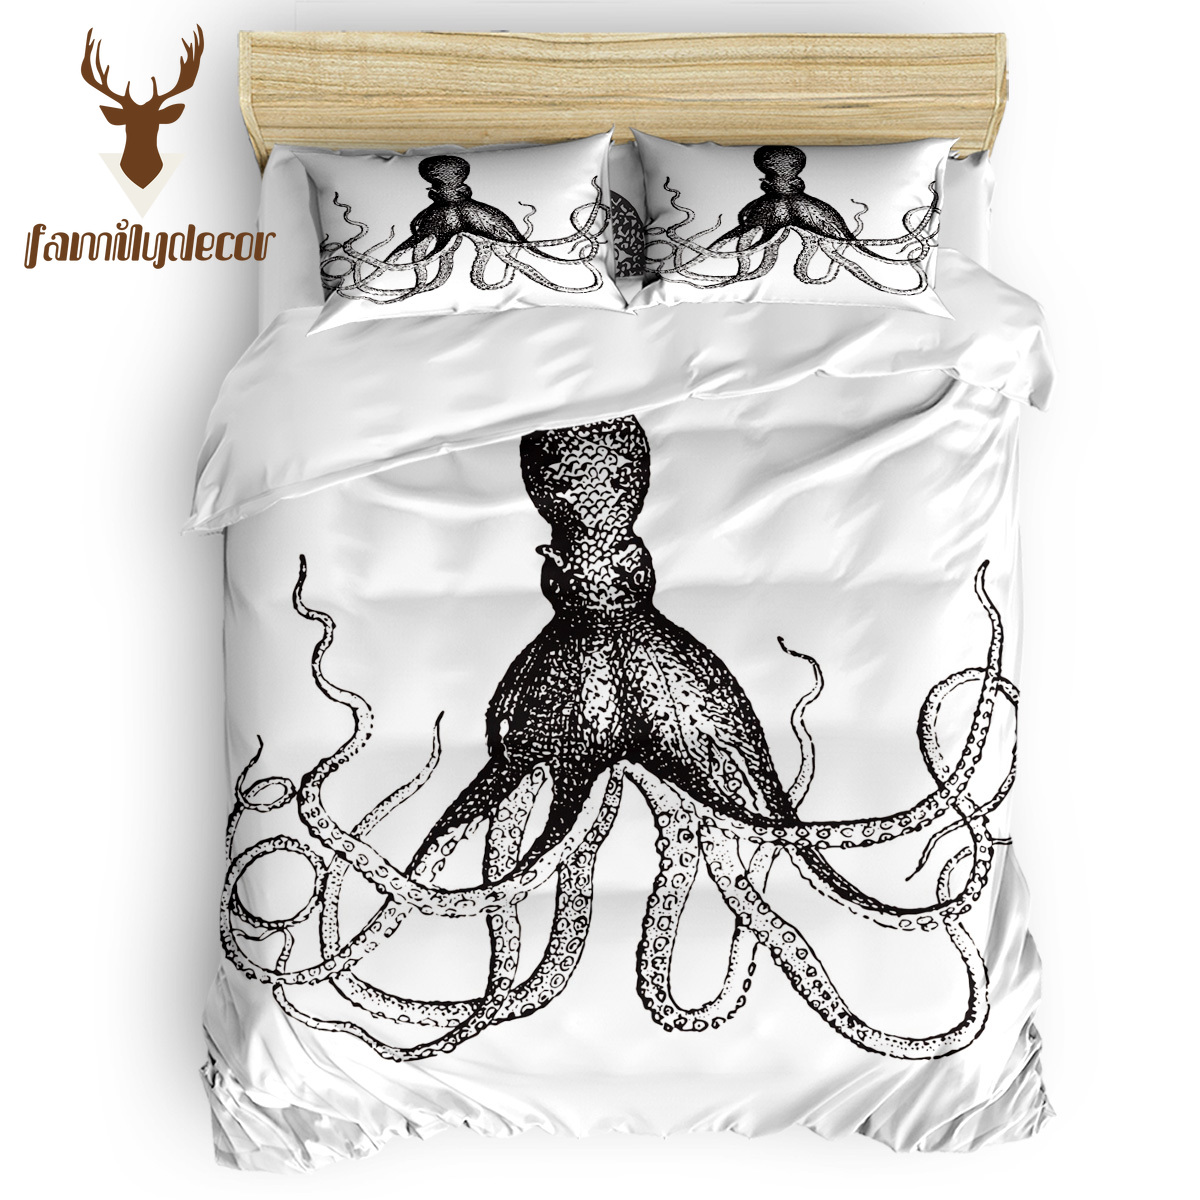 FamilyDecor DHL Free Shipping Sea Octopus Cthulhu Bedding Sets Duvet Set Covers Father'S Day Flat Sheet Halloween Bed Sets